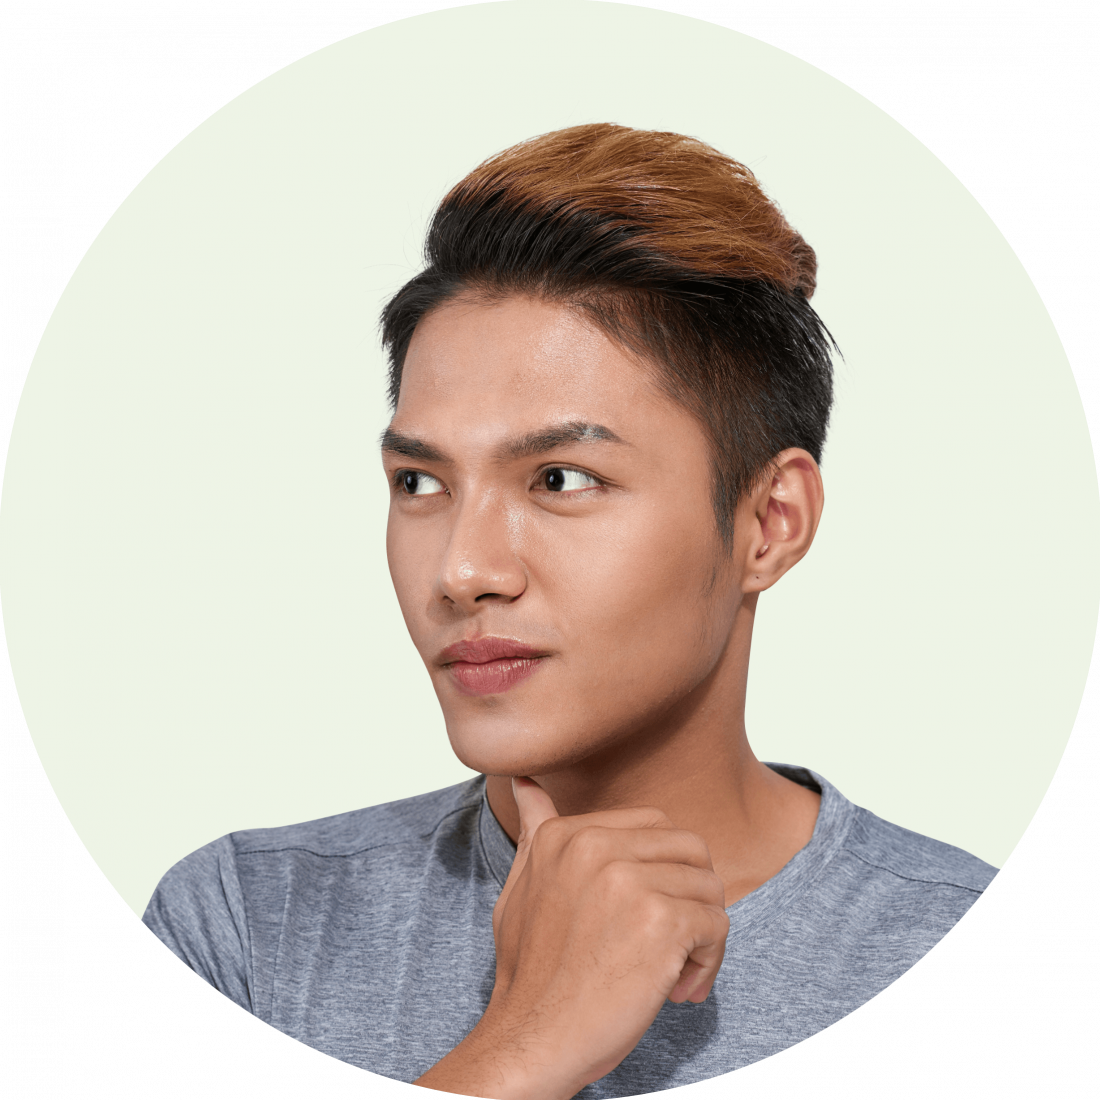 Why men choose Double Chin Liposuction?